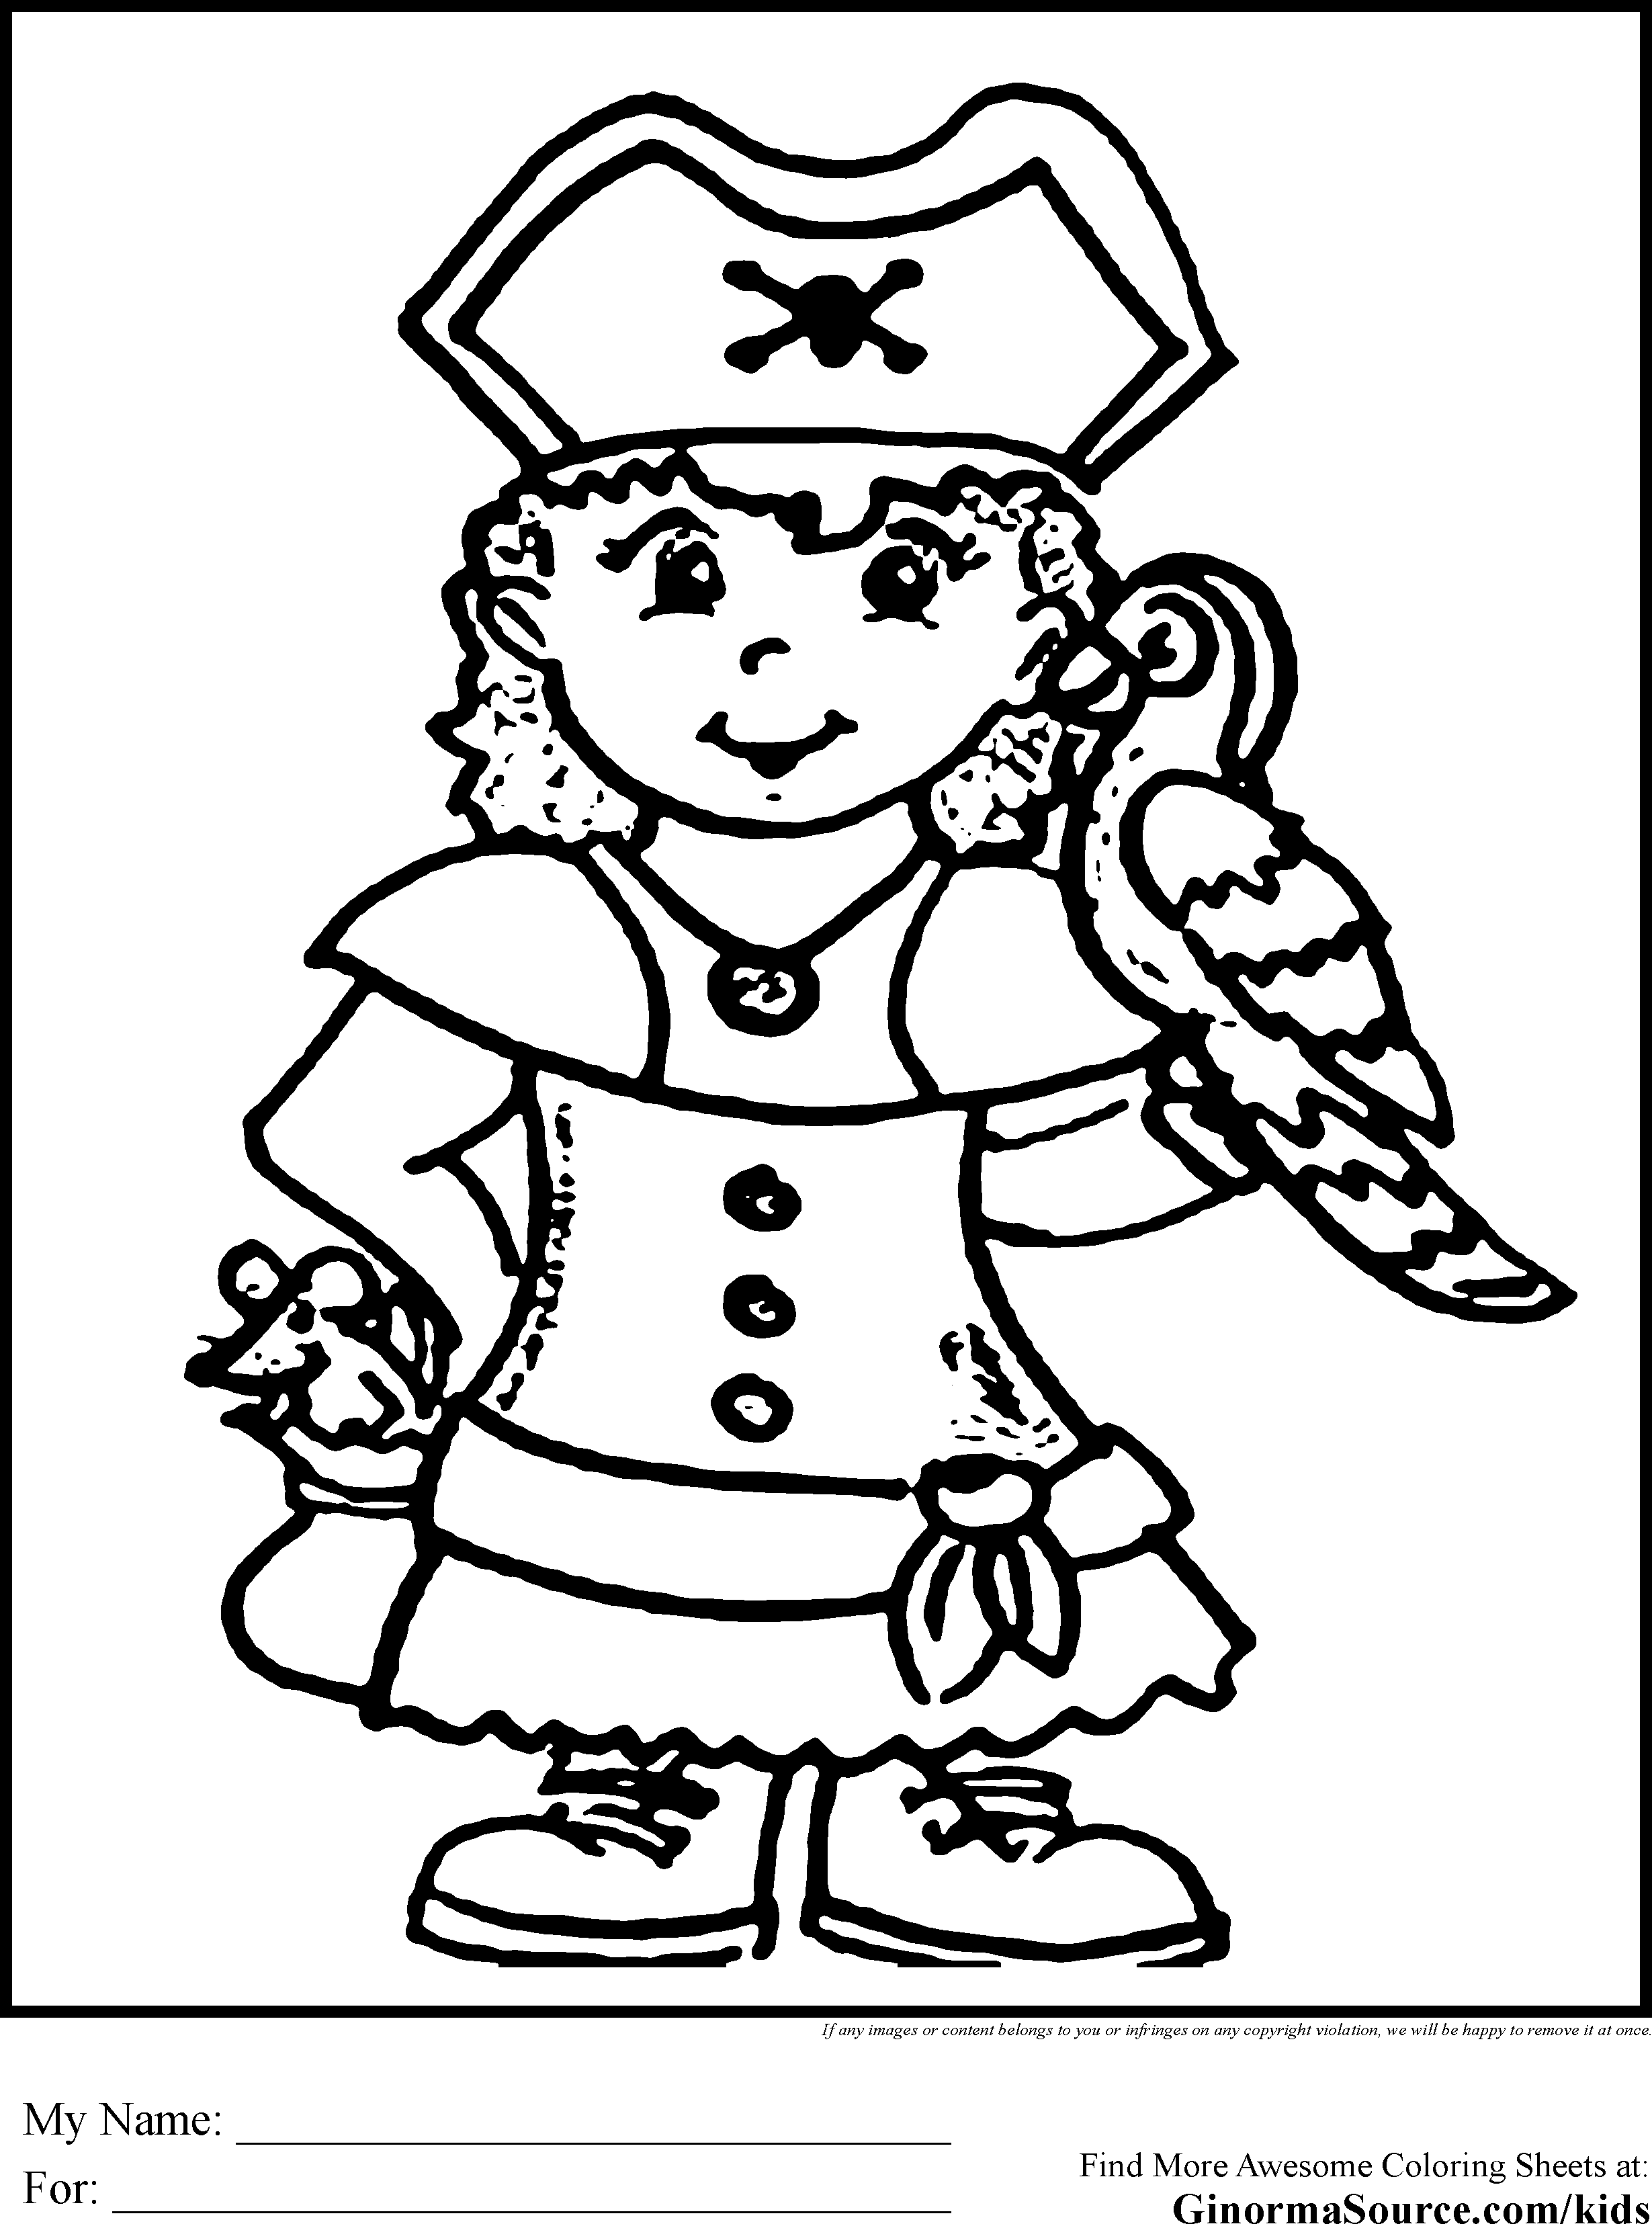 Coloring Pages Girl Pirate Coloring Pages girl pirate coloring page az pages ginormasource kids